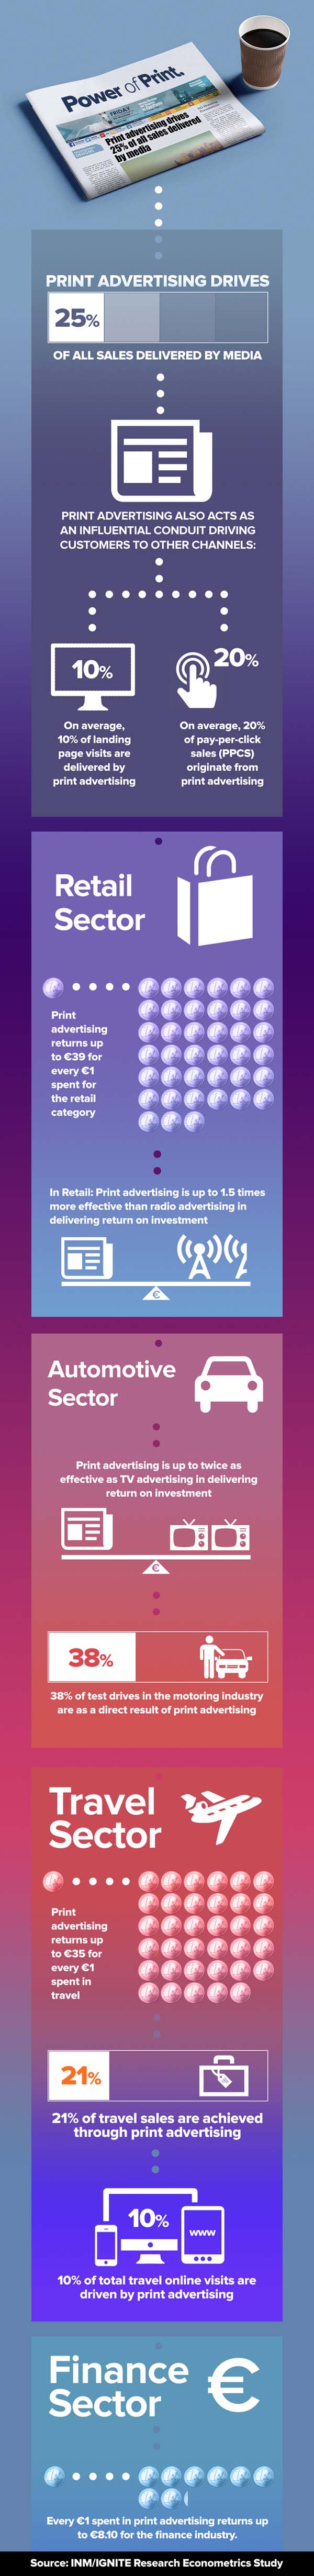 infographic power of print